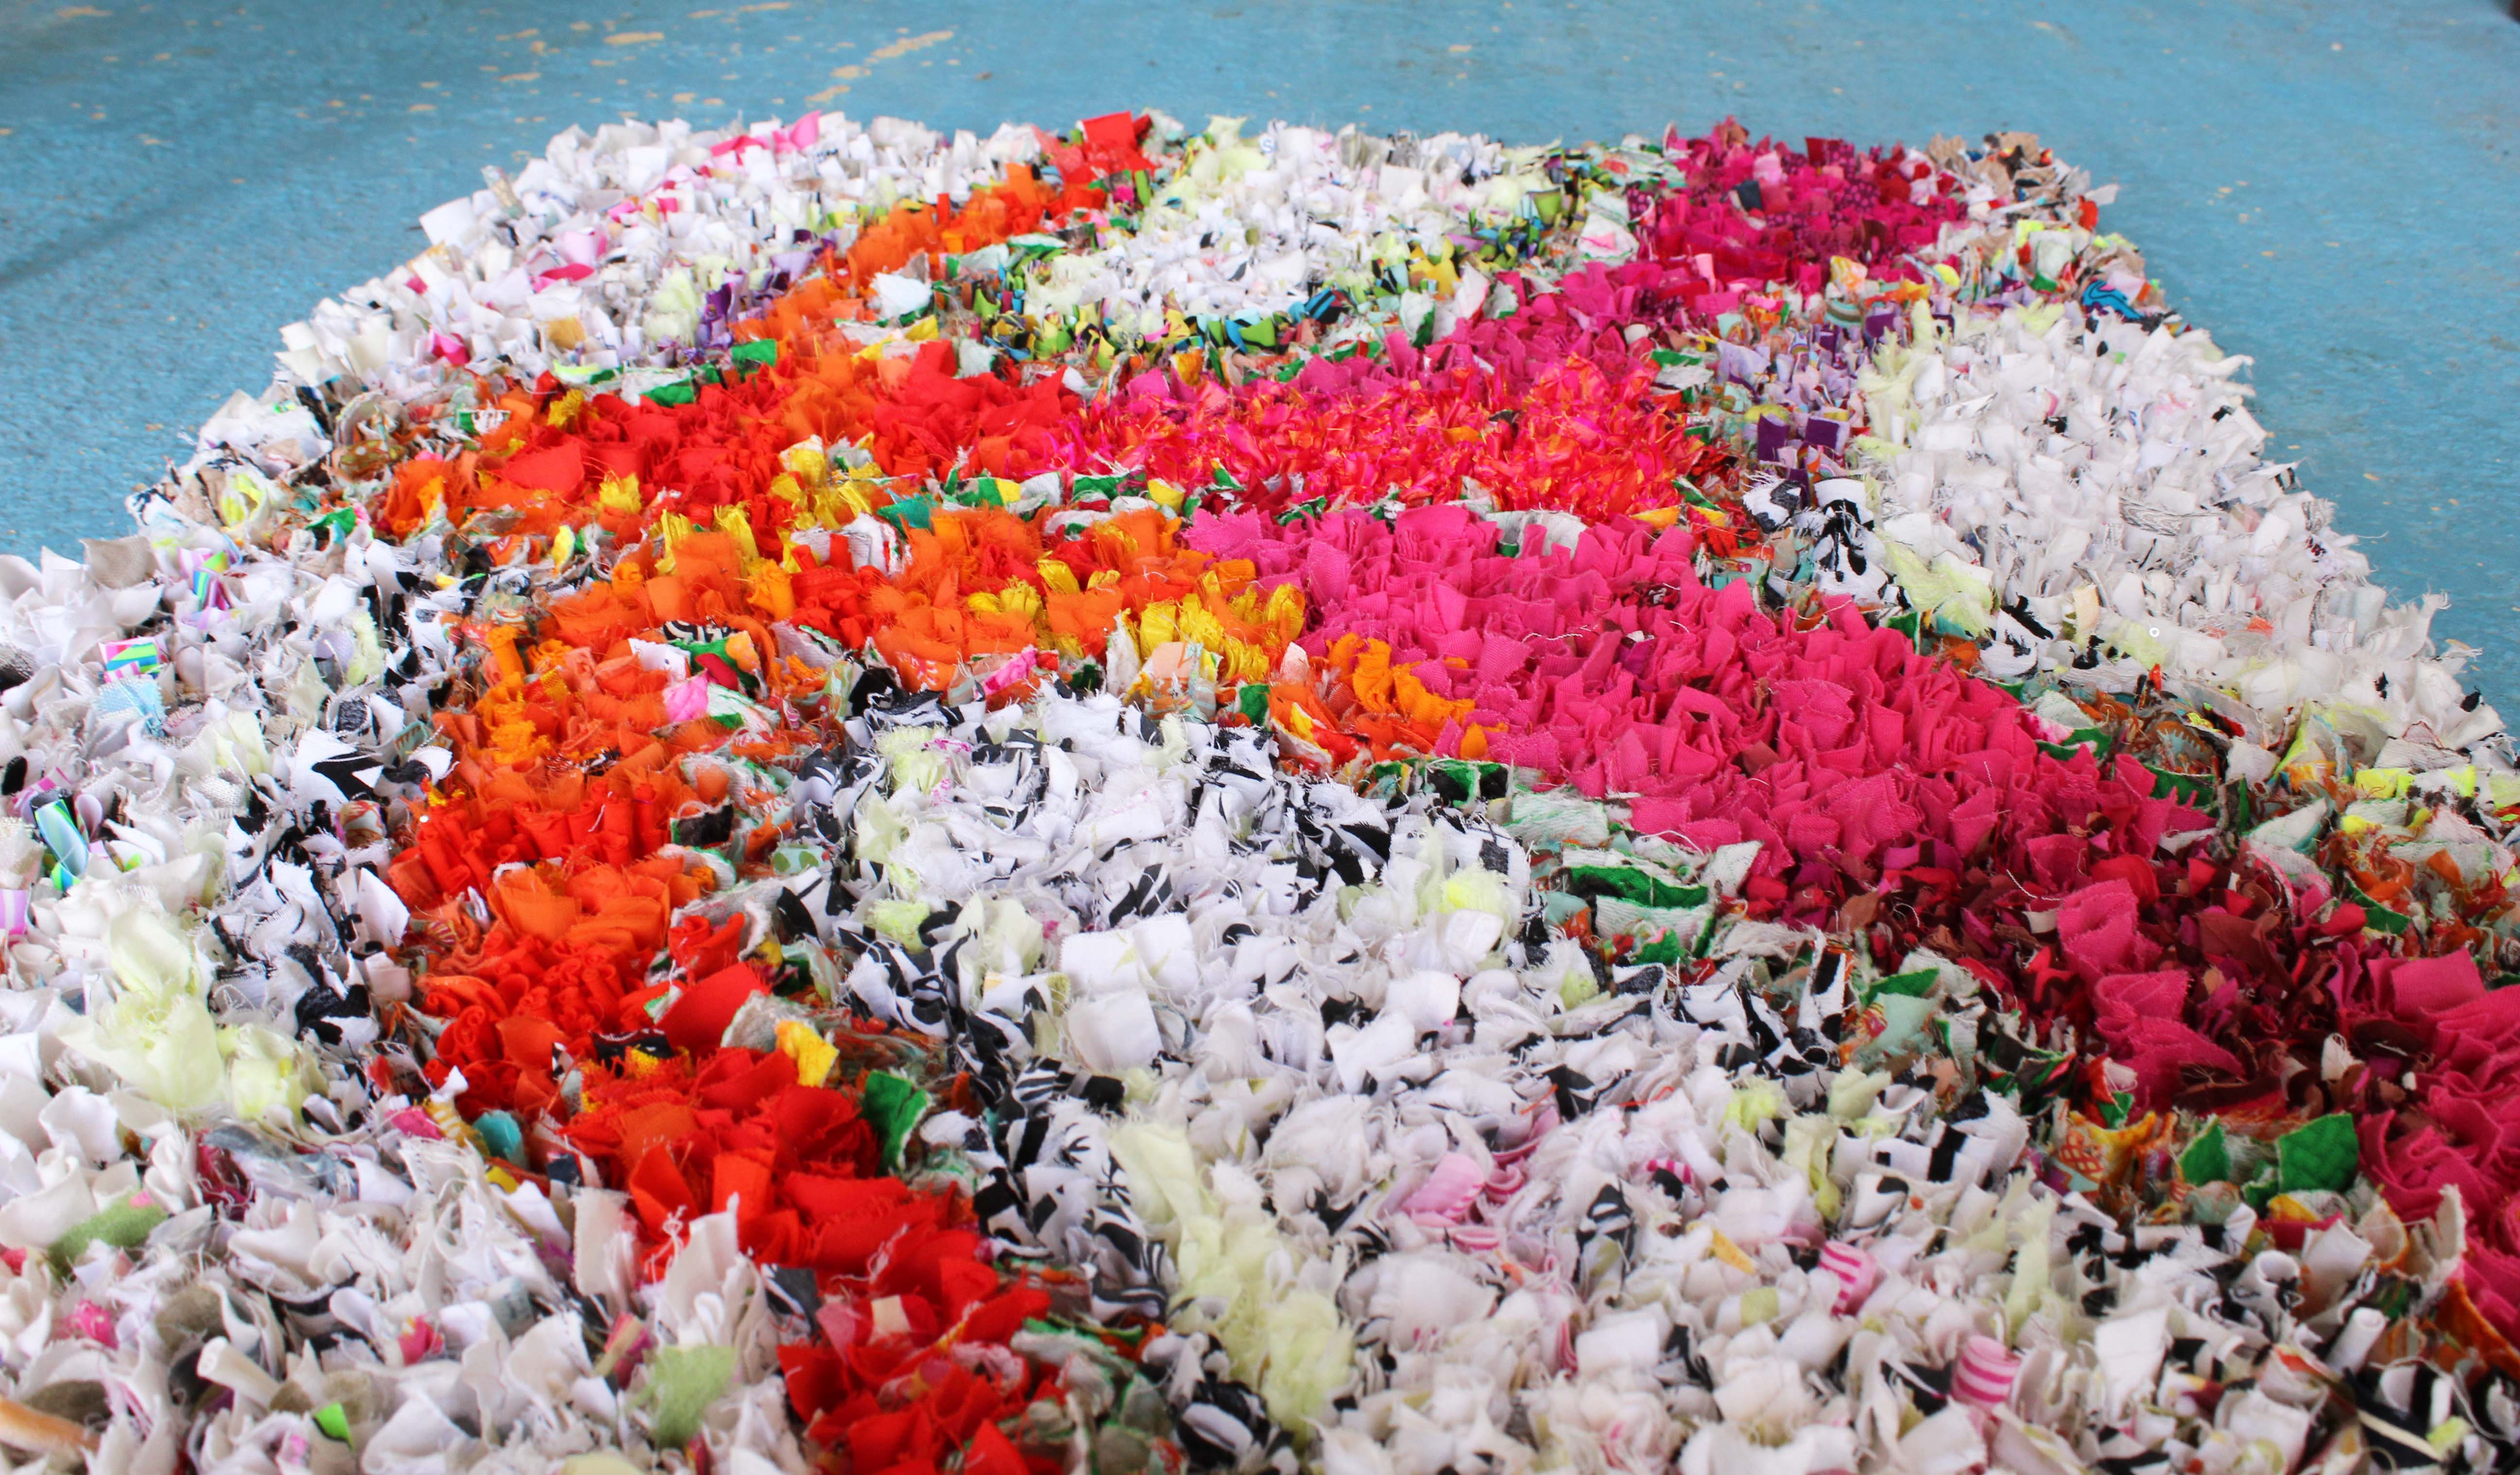 An intricate rag rug design made using old t-shirts and fabric offcuts